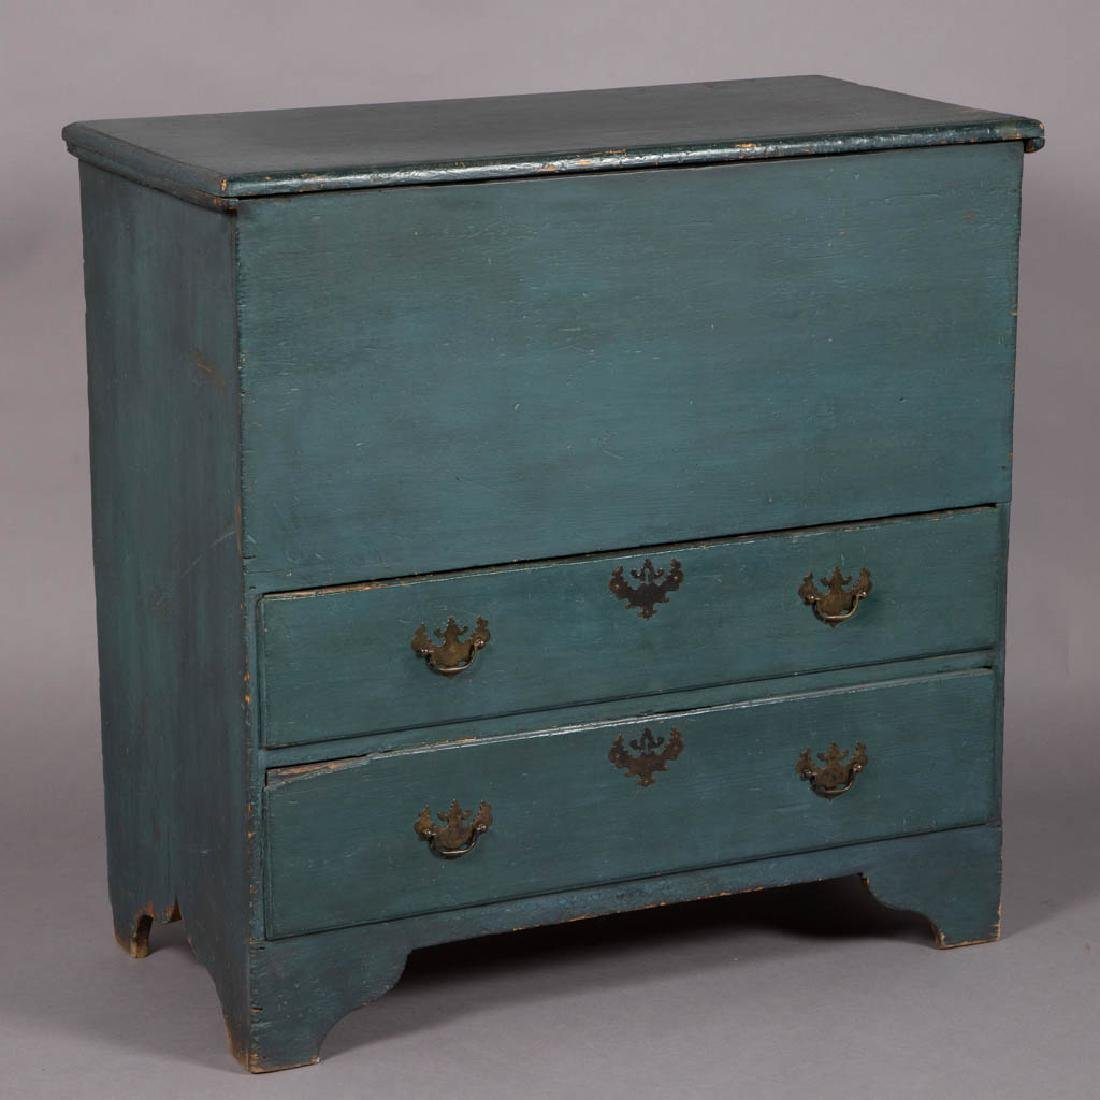 NEW ENGLAND PAINTED PINE MULE CHEST